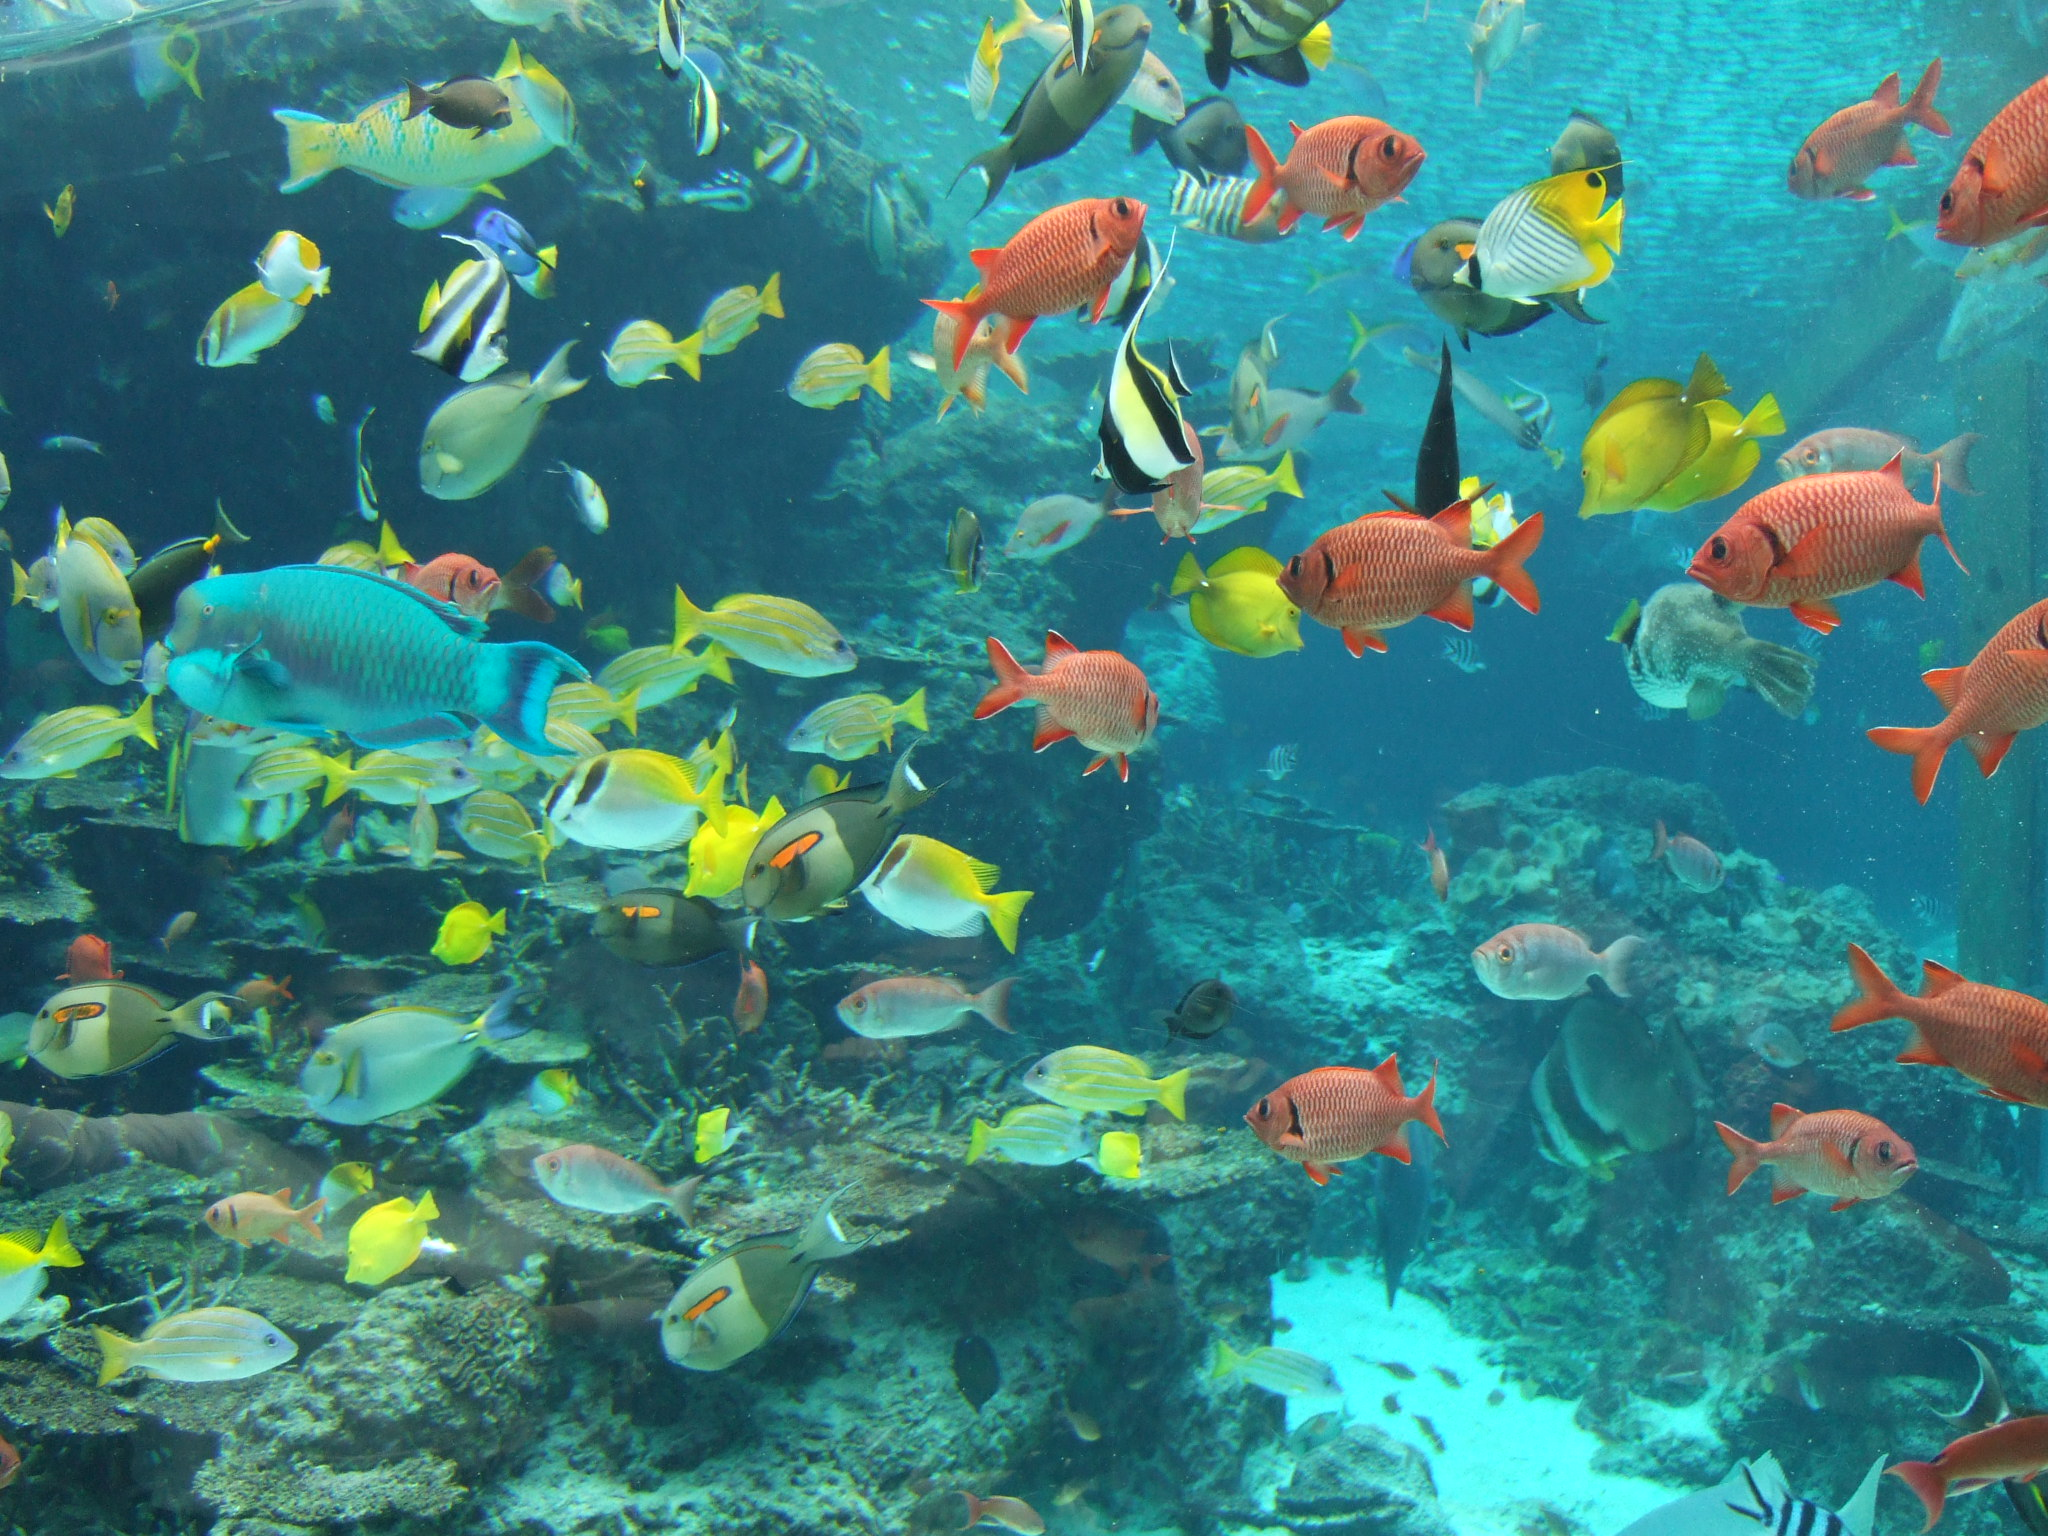 Fish_in_Okinawa_Churaumi_Aquarium.JPG